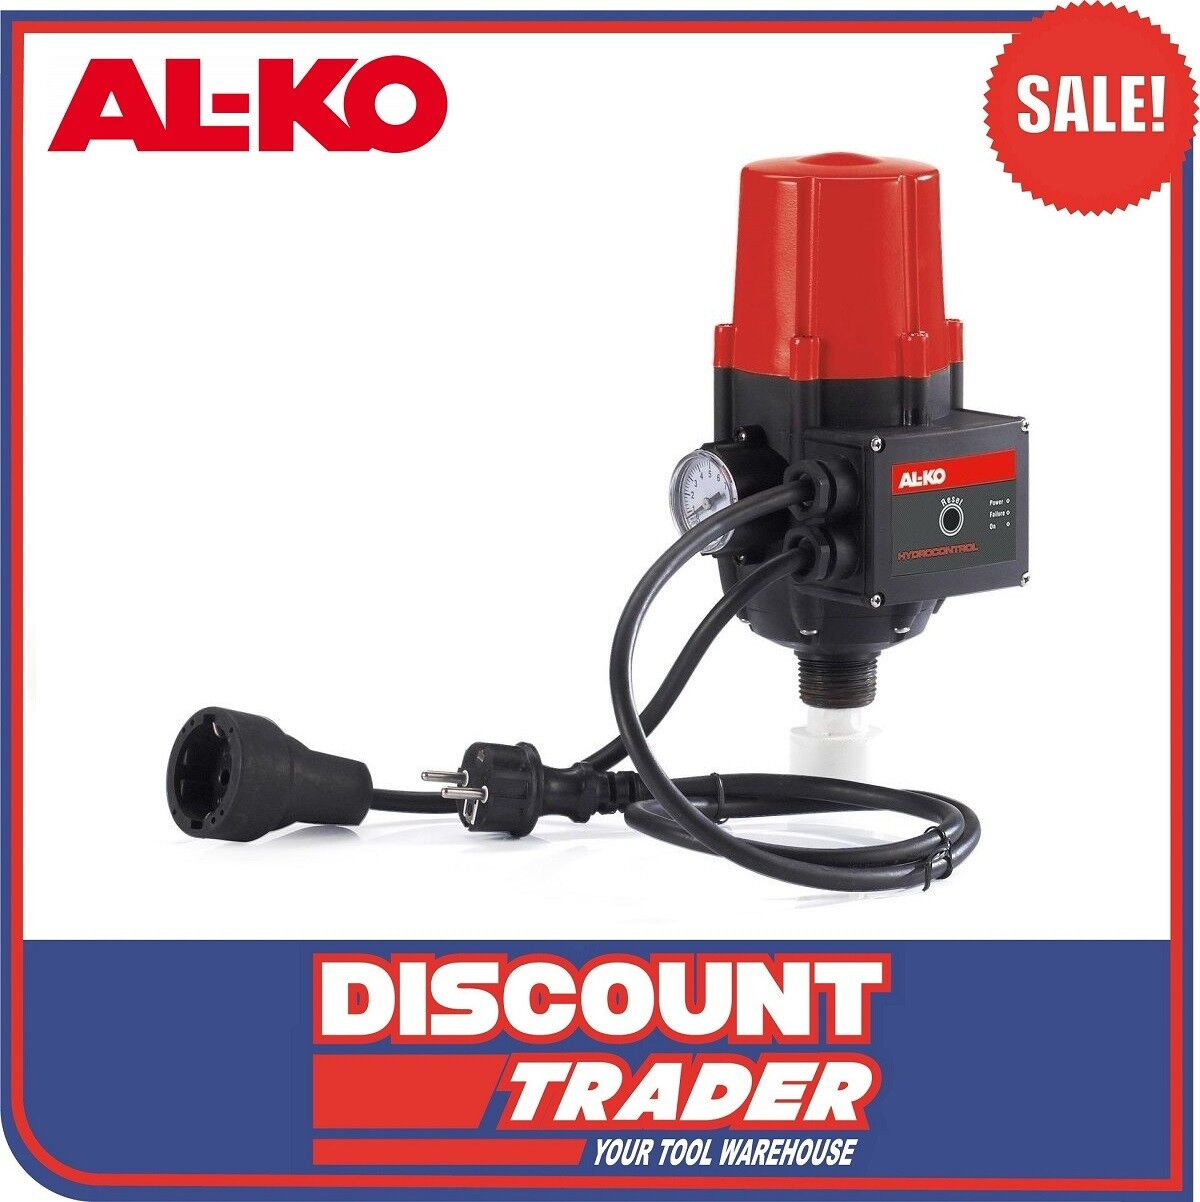 Alko (pumping station): description, characteristics, device and reviews 51